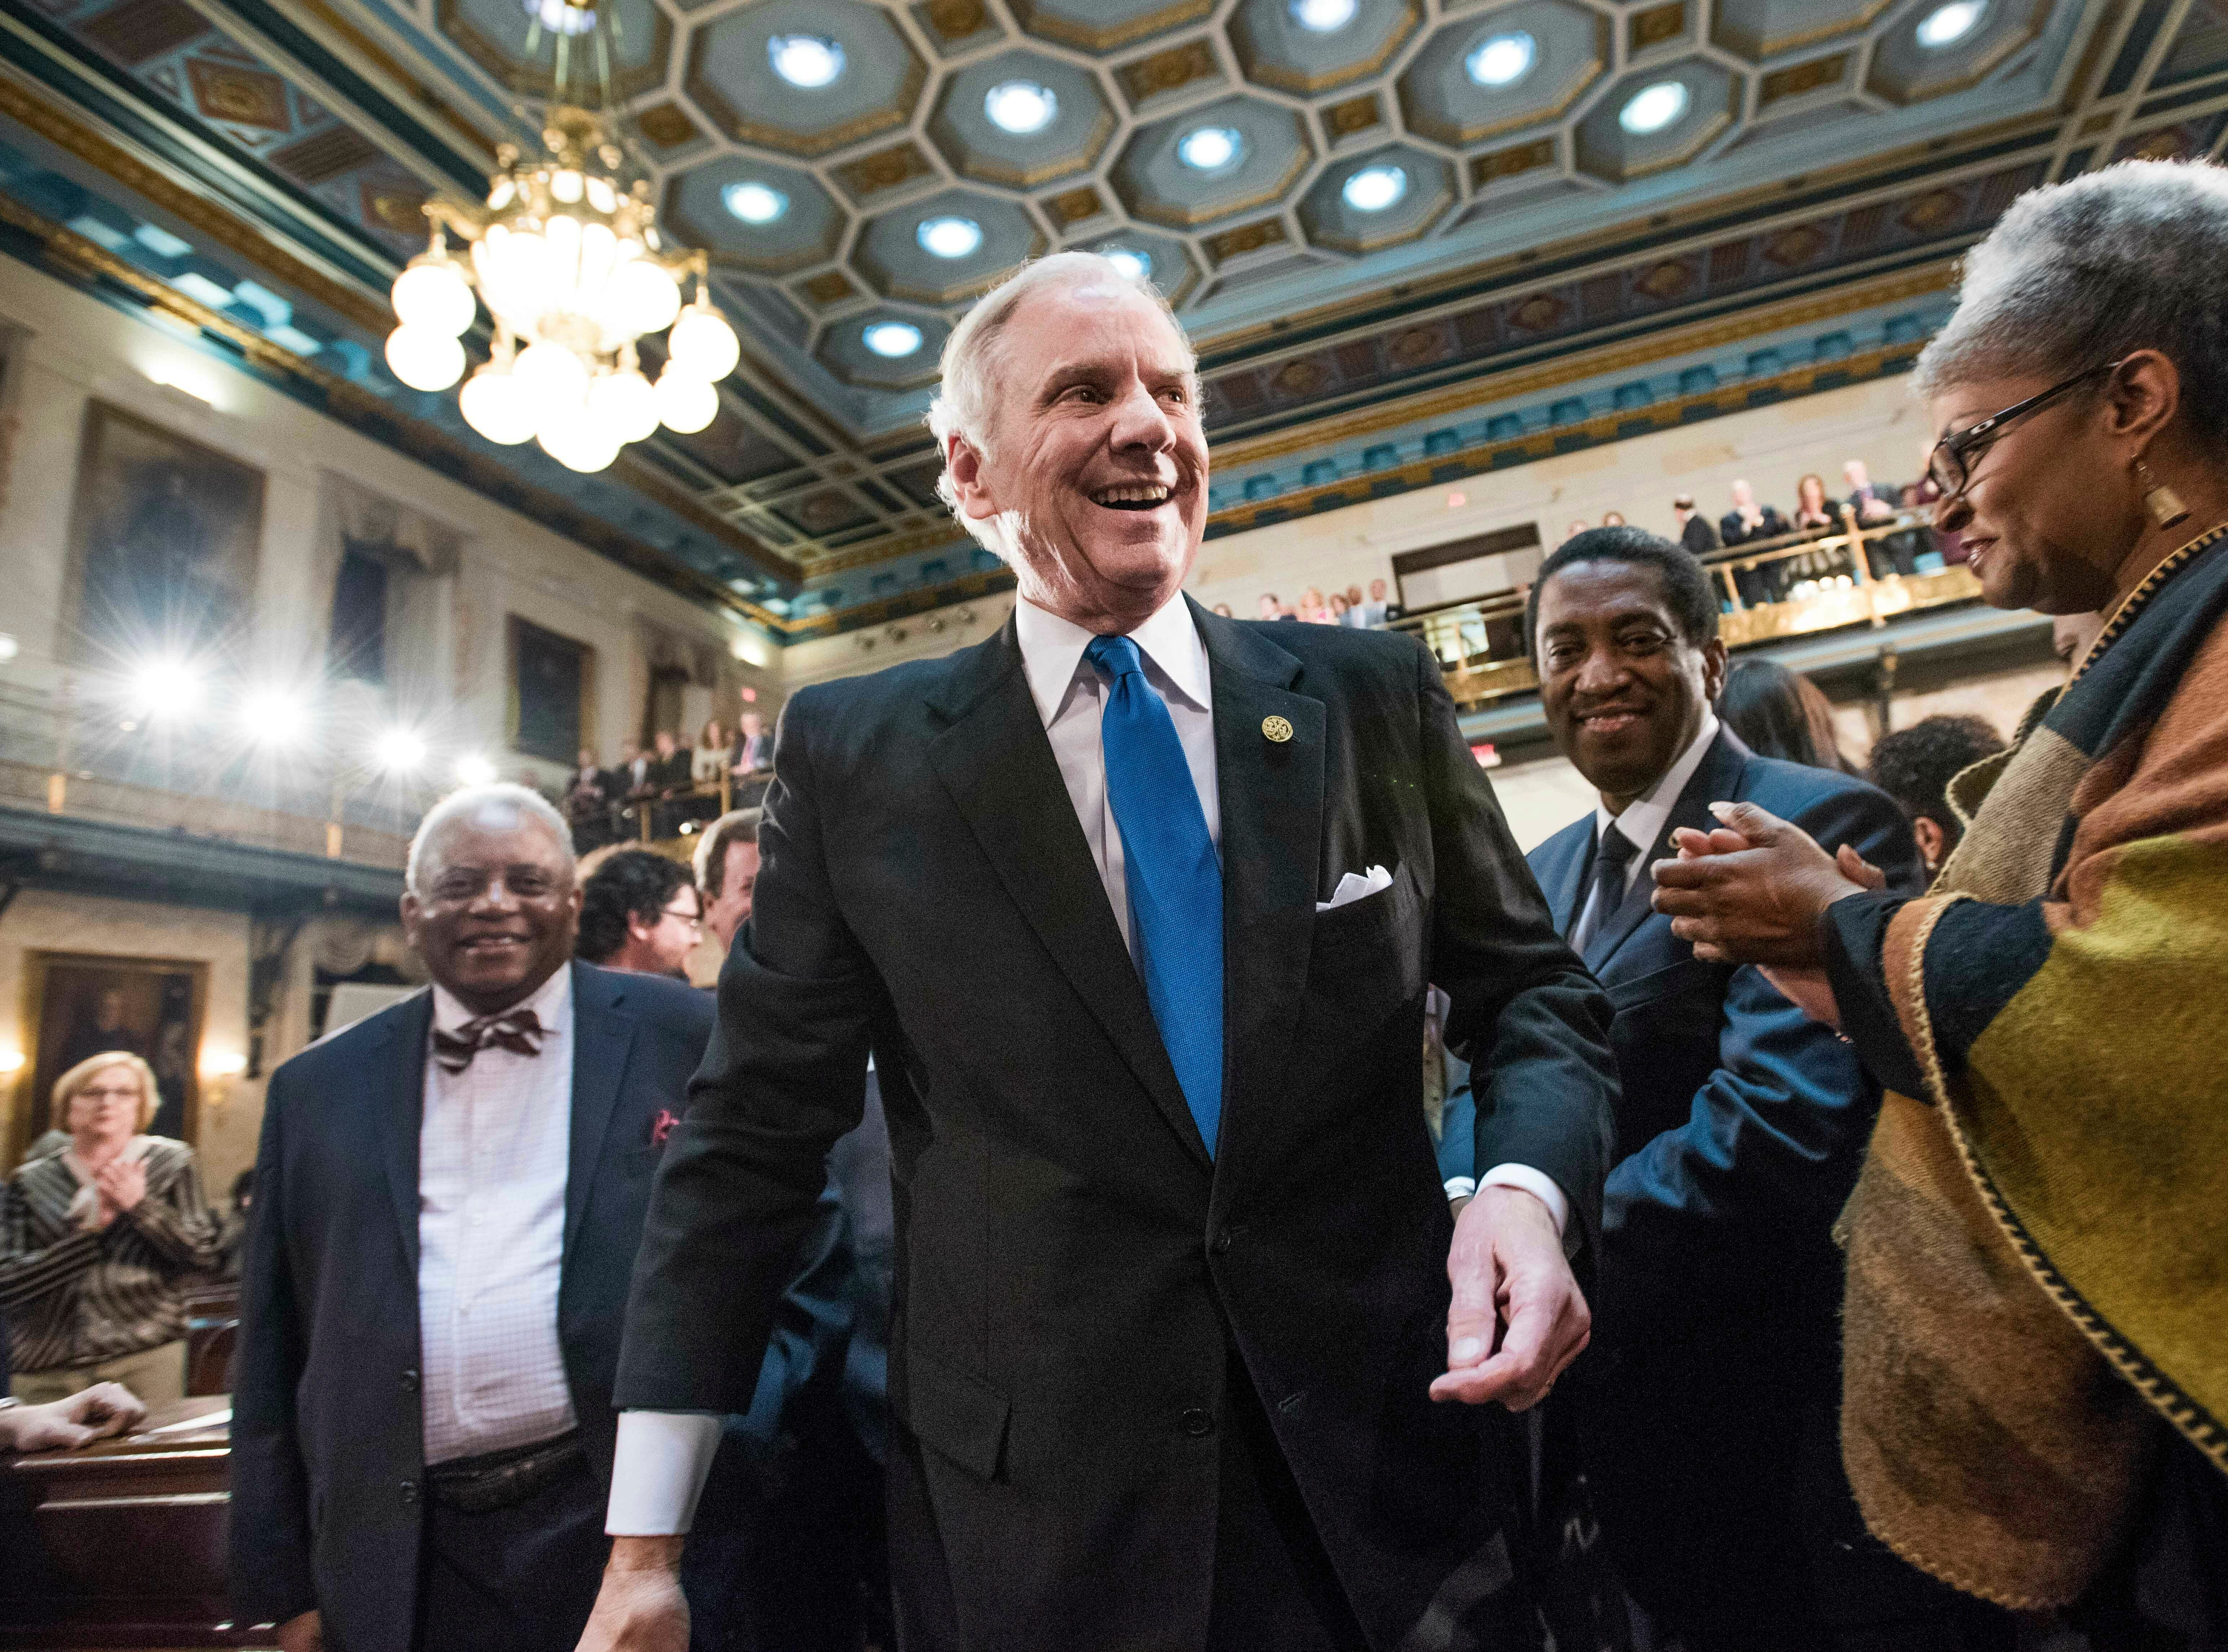 South Carolina Governor Henry McMaster greets lawmakers, including Rep. Wendy Brawley, D-Richland, right, before delivering the State of the State address at the South Carolina Statehouse, Wednesday, Jan. 23, 2019, in Columbia, S.C. (AP Photo/Sean Rayford)